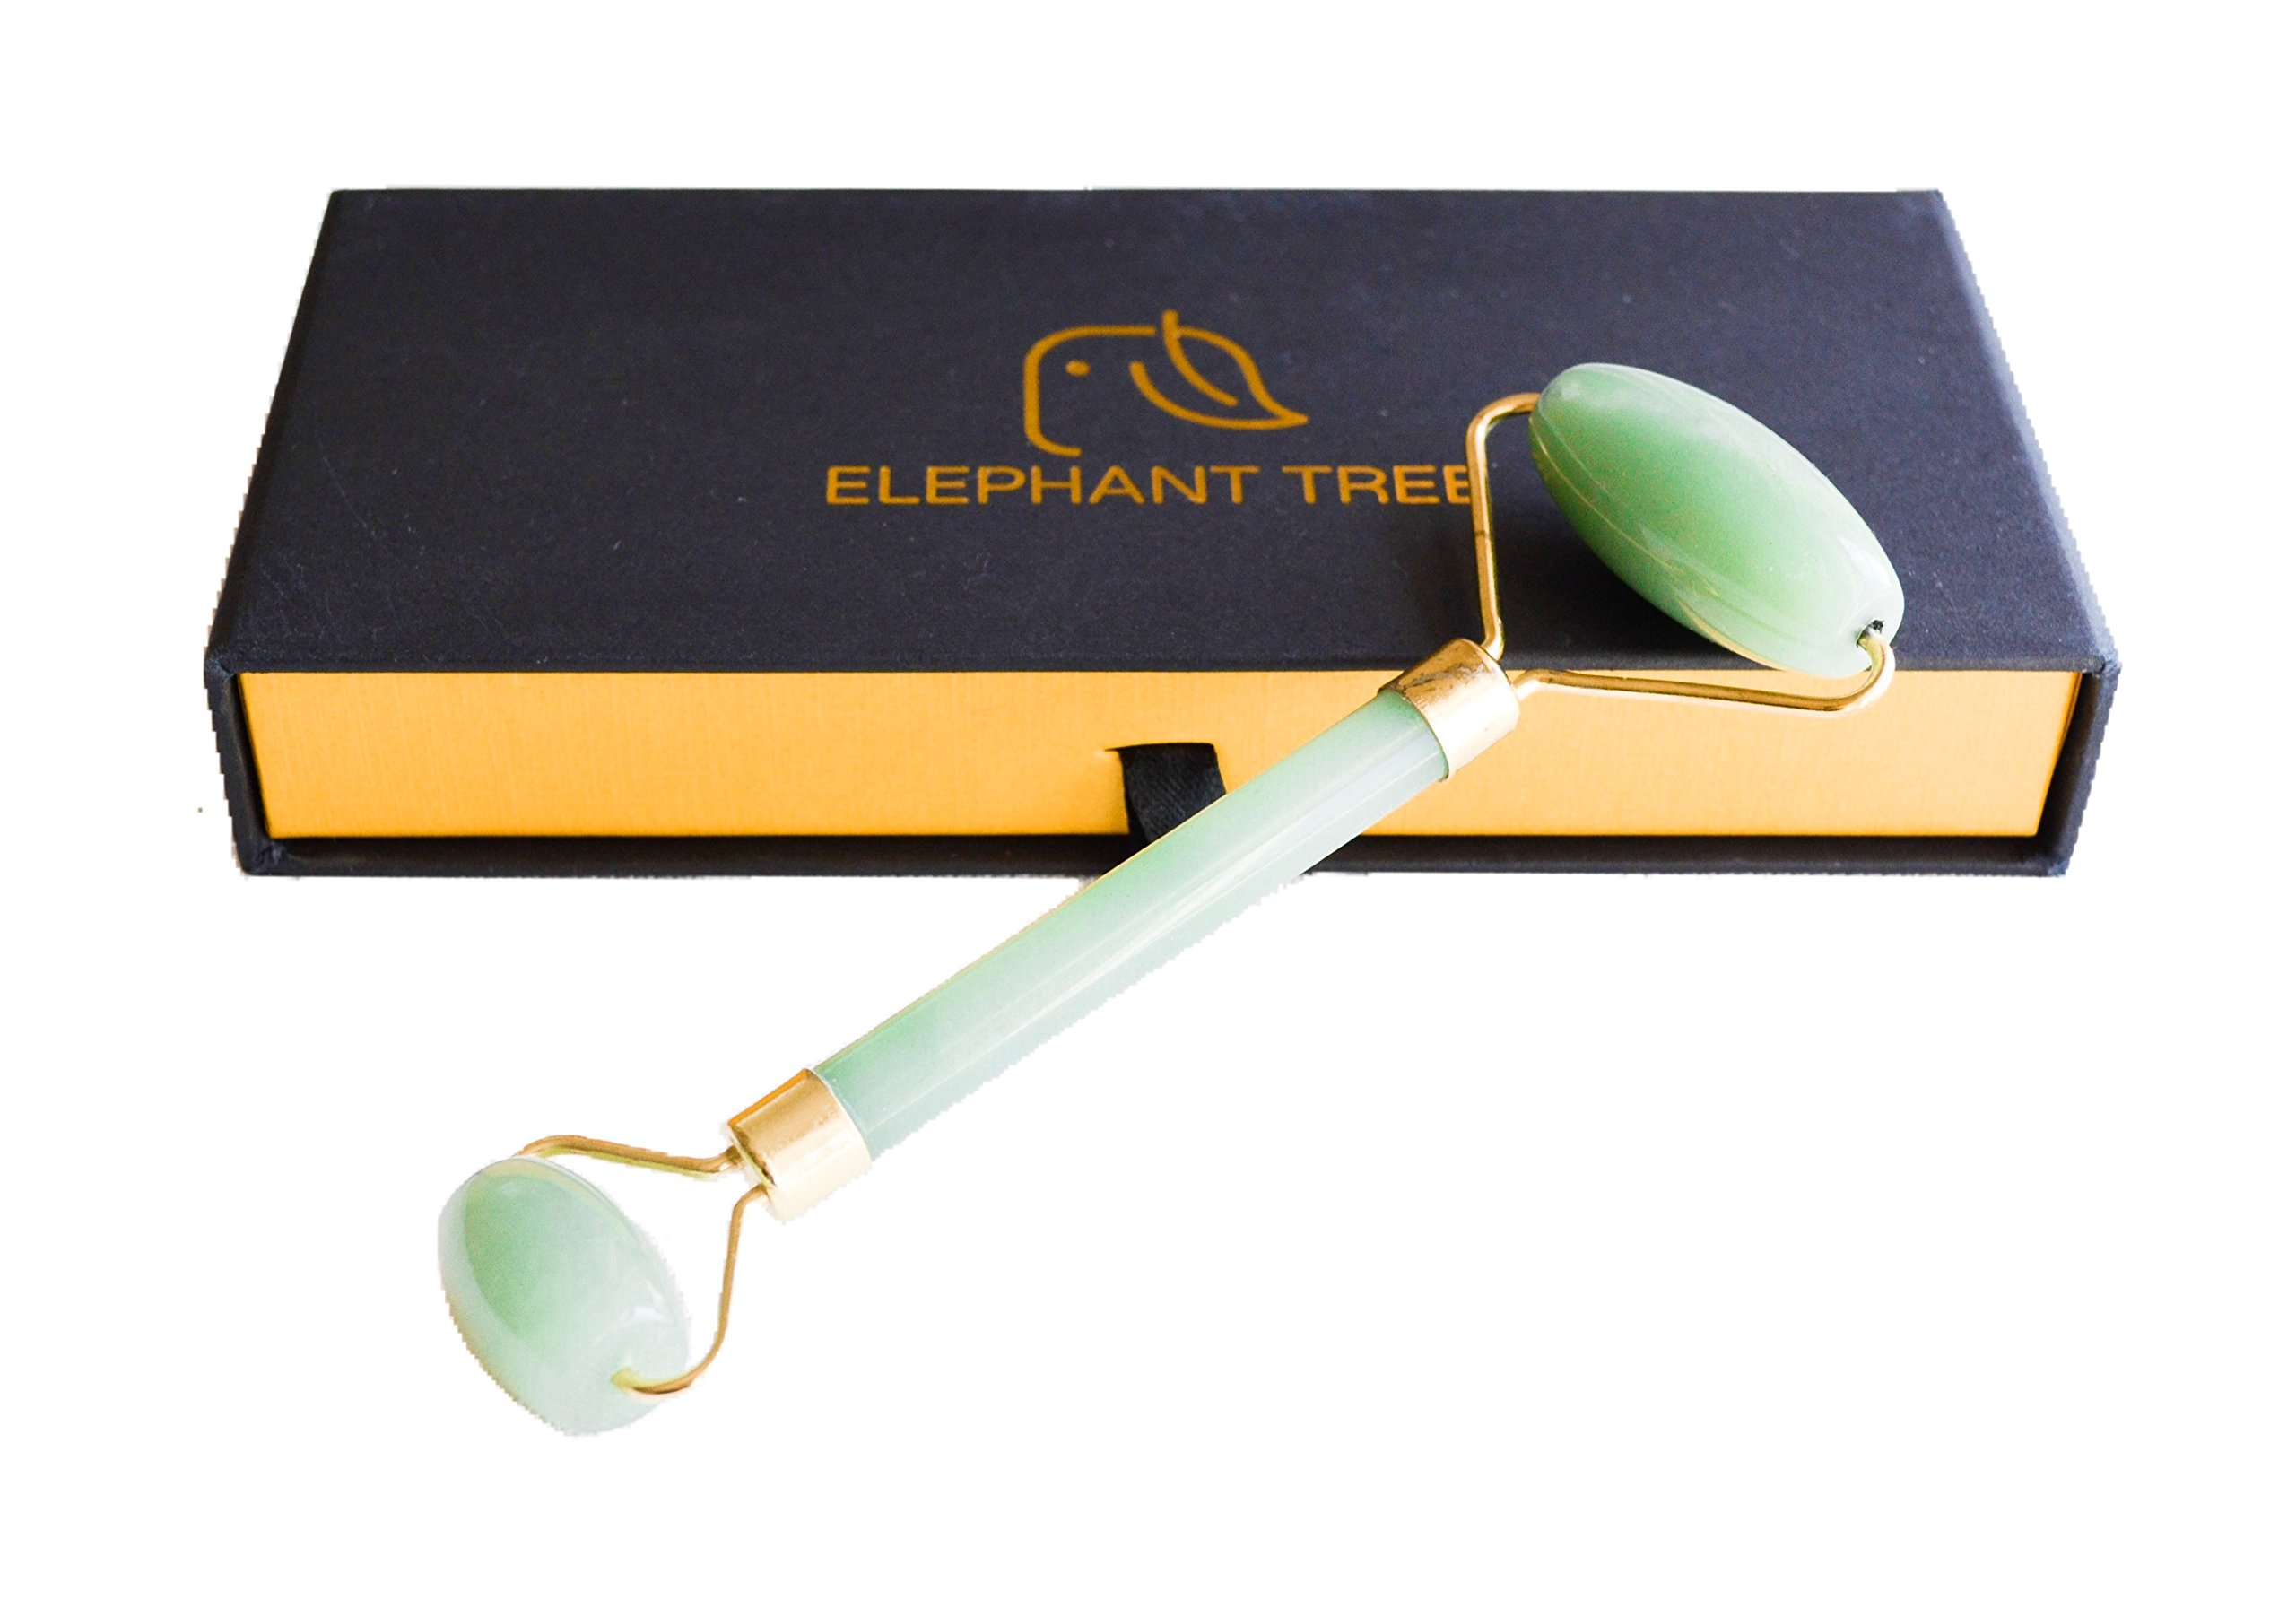 Elephant Tree Jade Roller for Facial Therapy Anti Aging 100% Natural Premium Jade Stone Roller - Handmade Face Massager Anti Wrinkle Jade Roller for Face